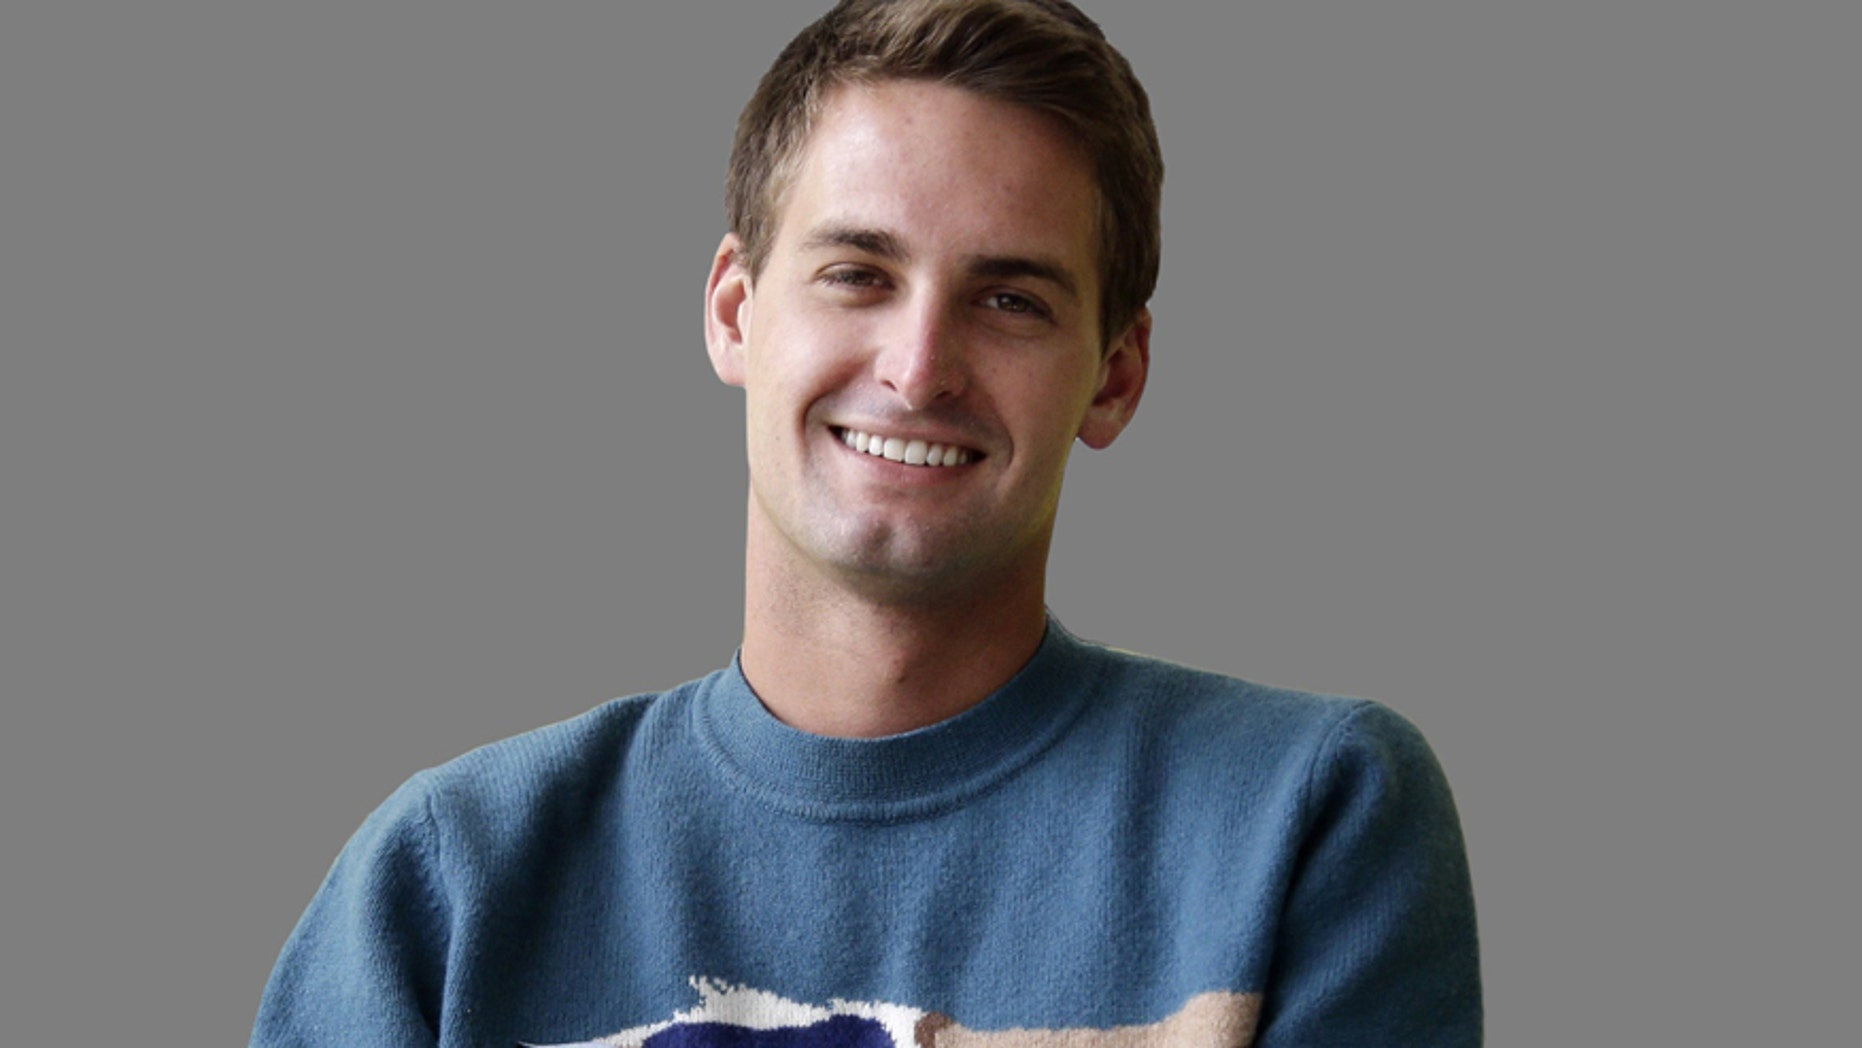 Snapchat co-founder and CEO Evan Spiegel.